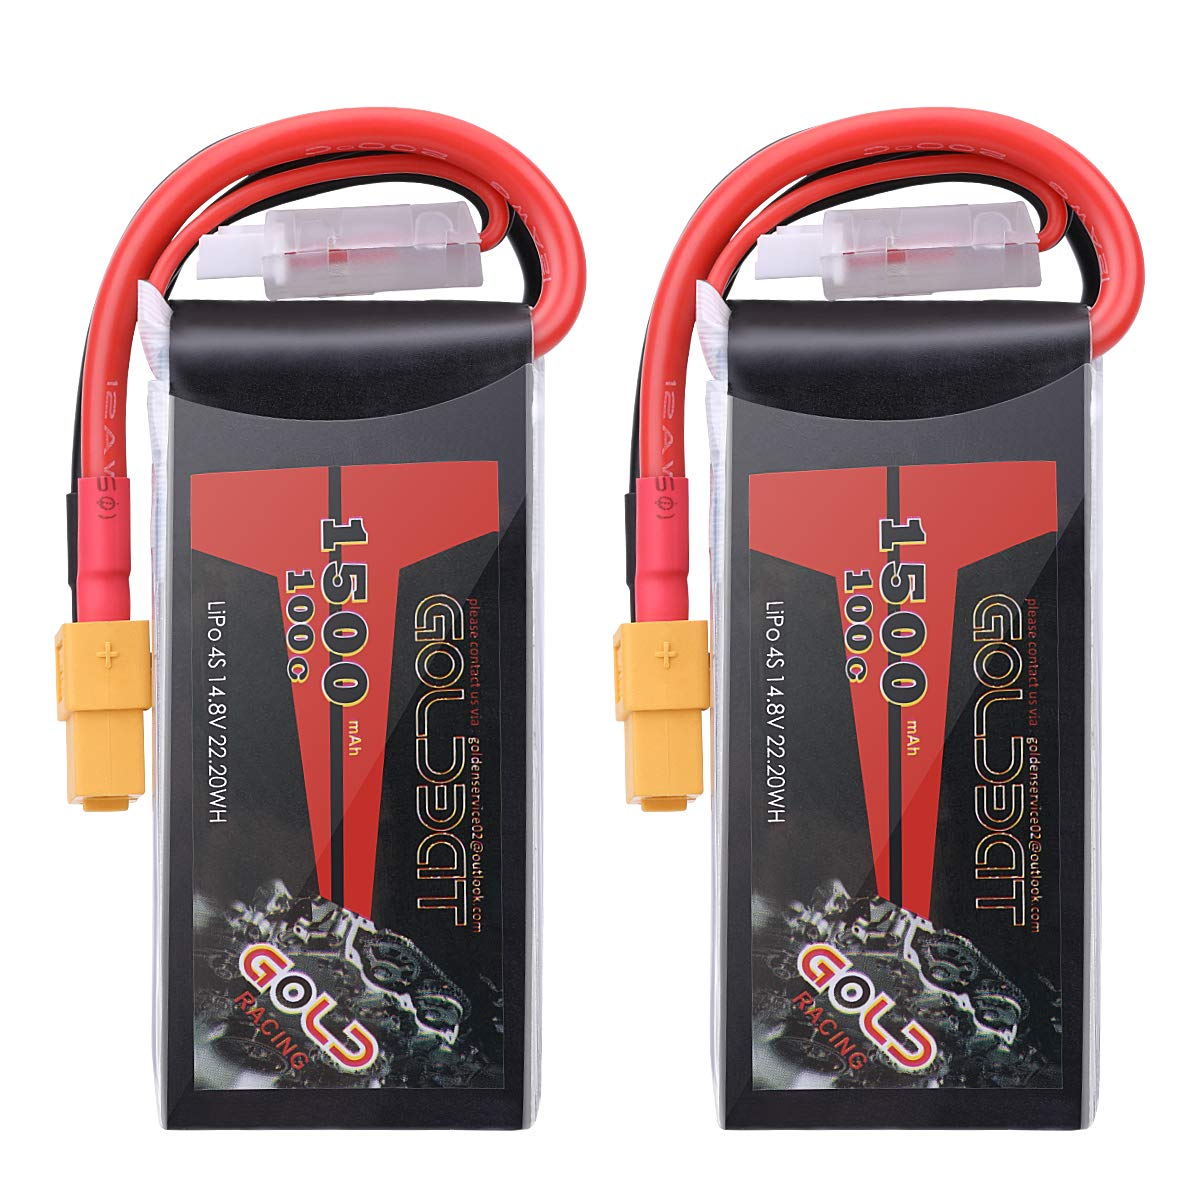 GOLDBAT 1500mAh 4S 100C 14.8V Softcase Lipo Battery Pack with XT60 Plug for RC Car Truck Boat Heli Airplane UAV Drone FPV Racing (2 Packs)